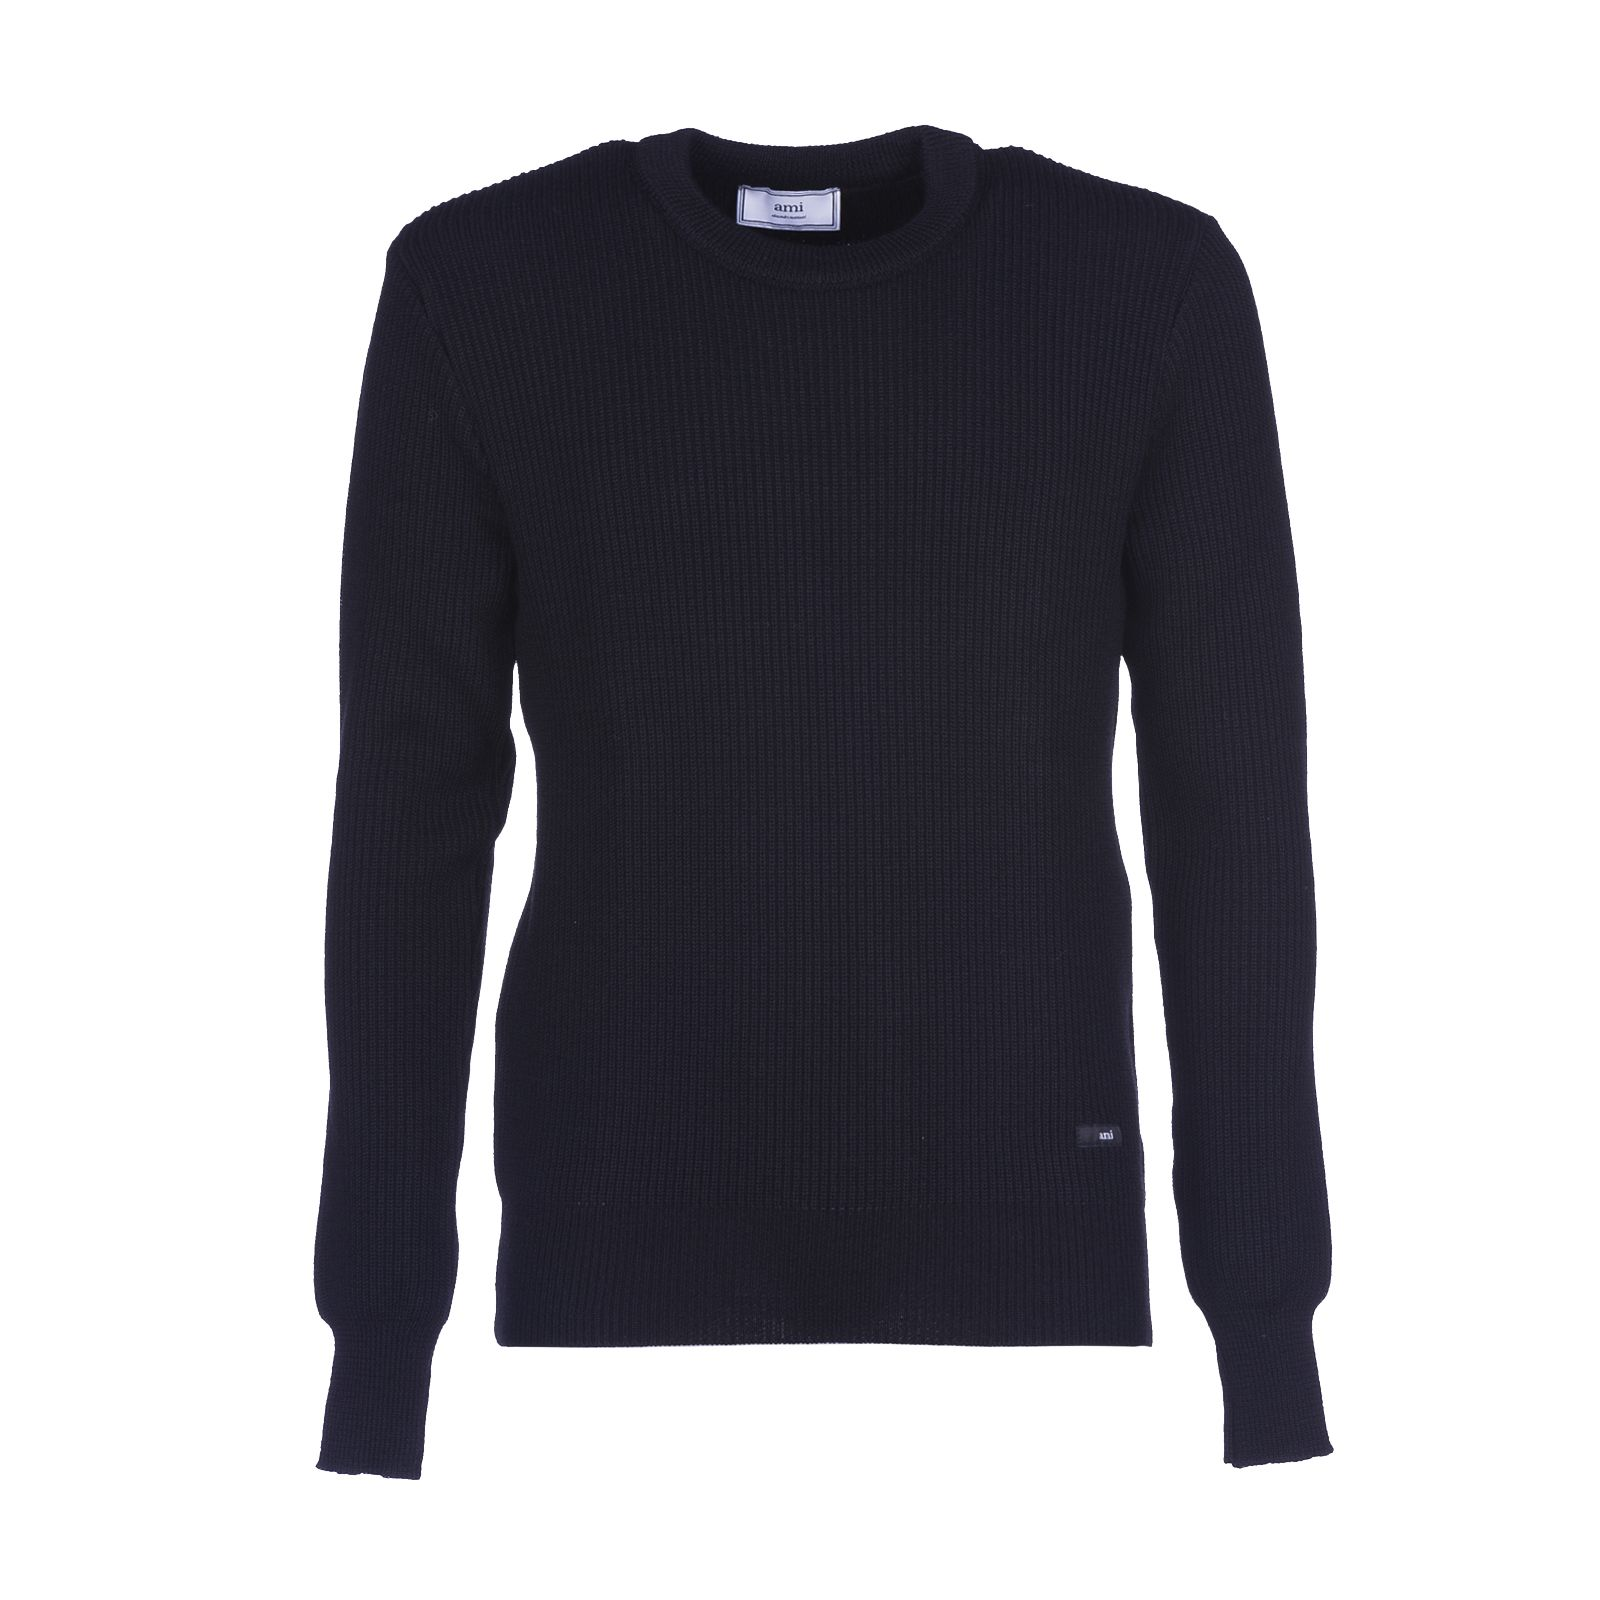 Ami Alexandre Mattiussi Fisherman Rib Crew Neck Sweater